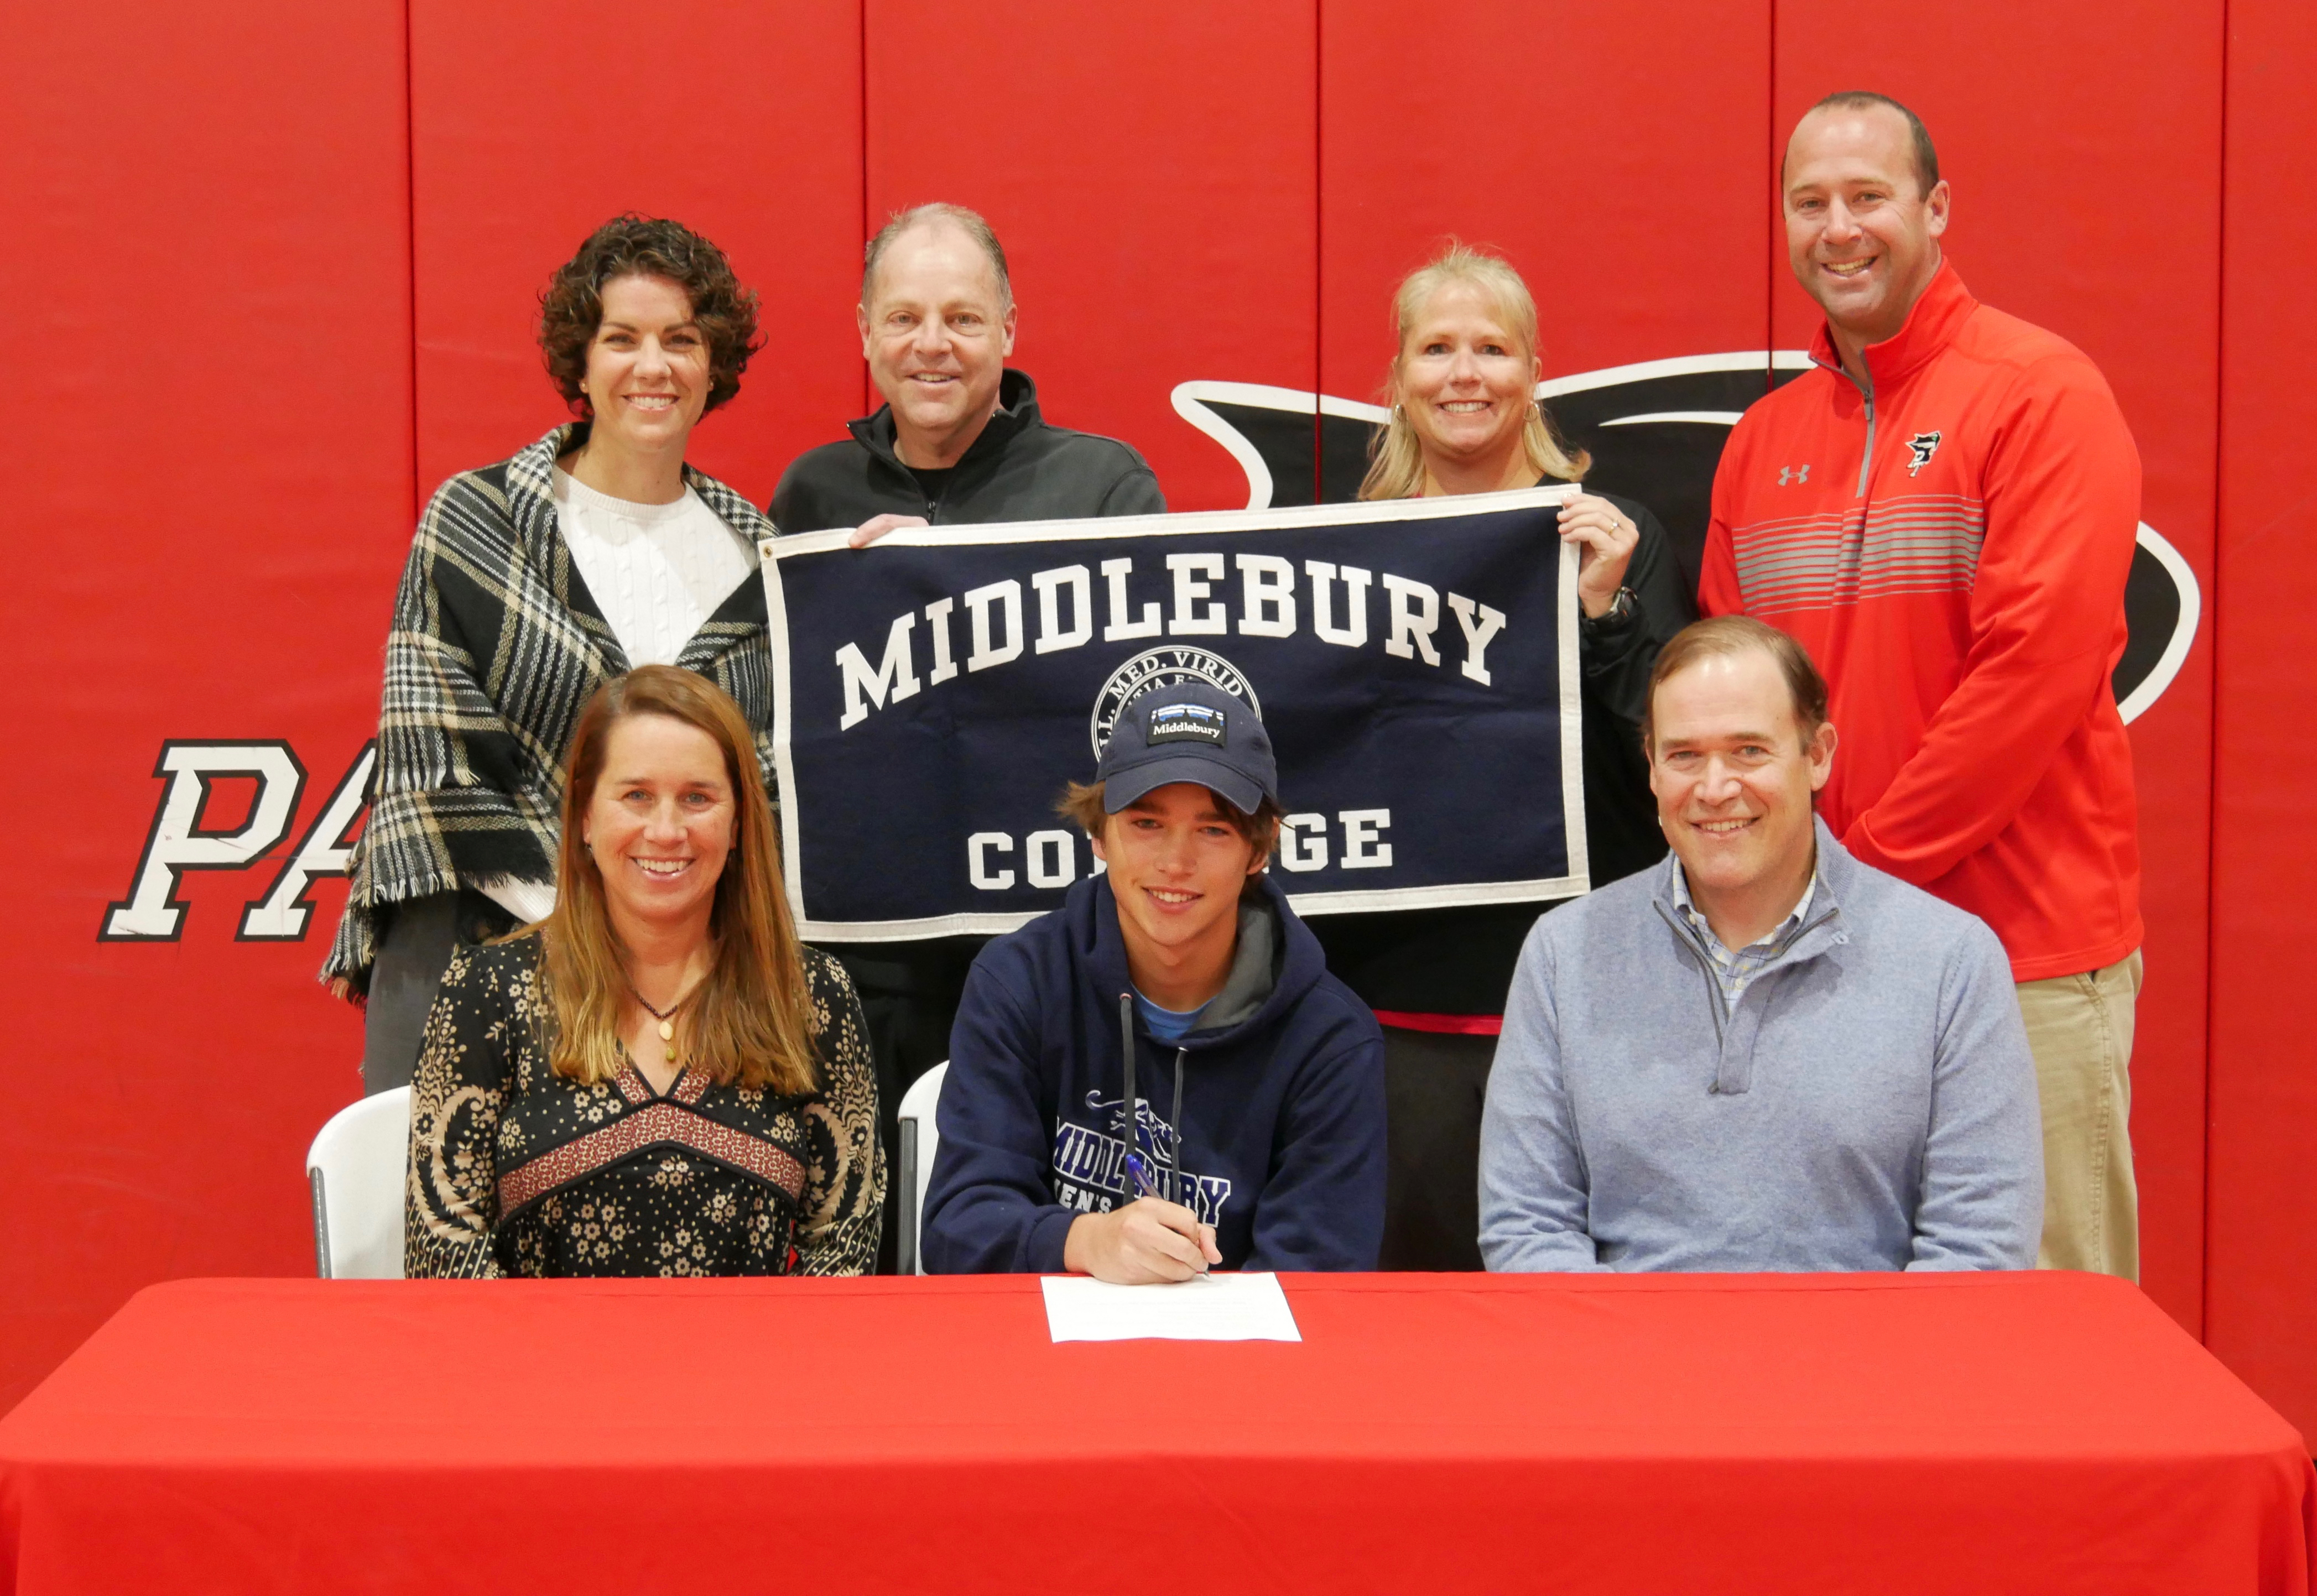 Aidan Harris Commits to Play Tennis at Middlebury College